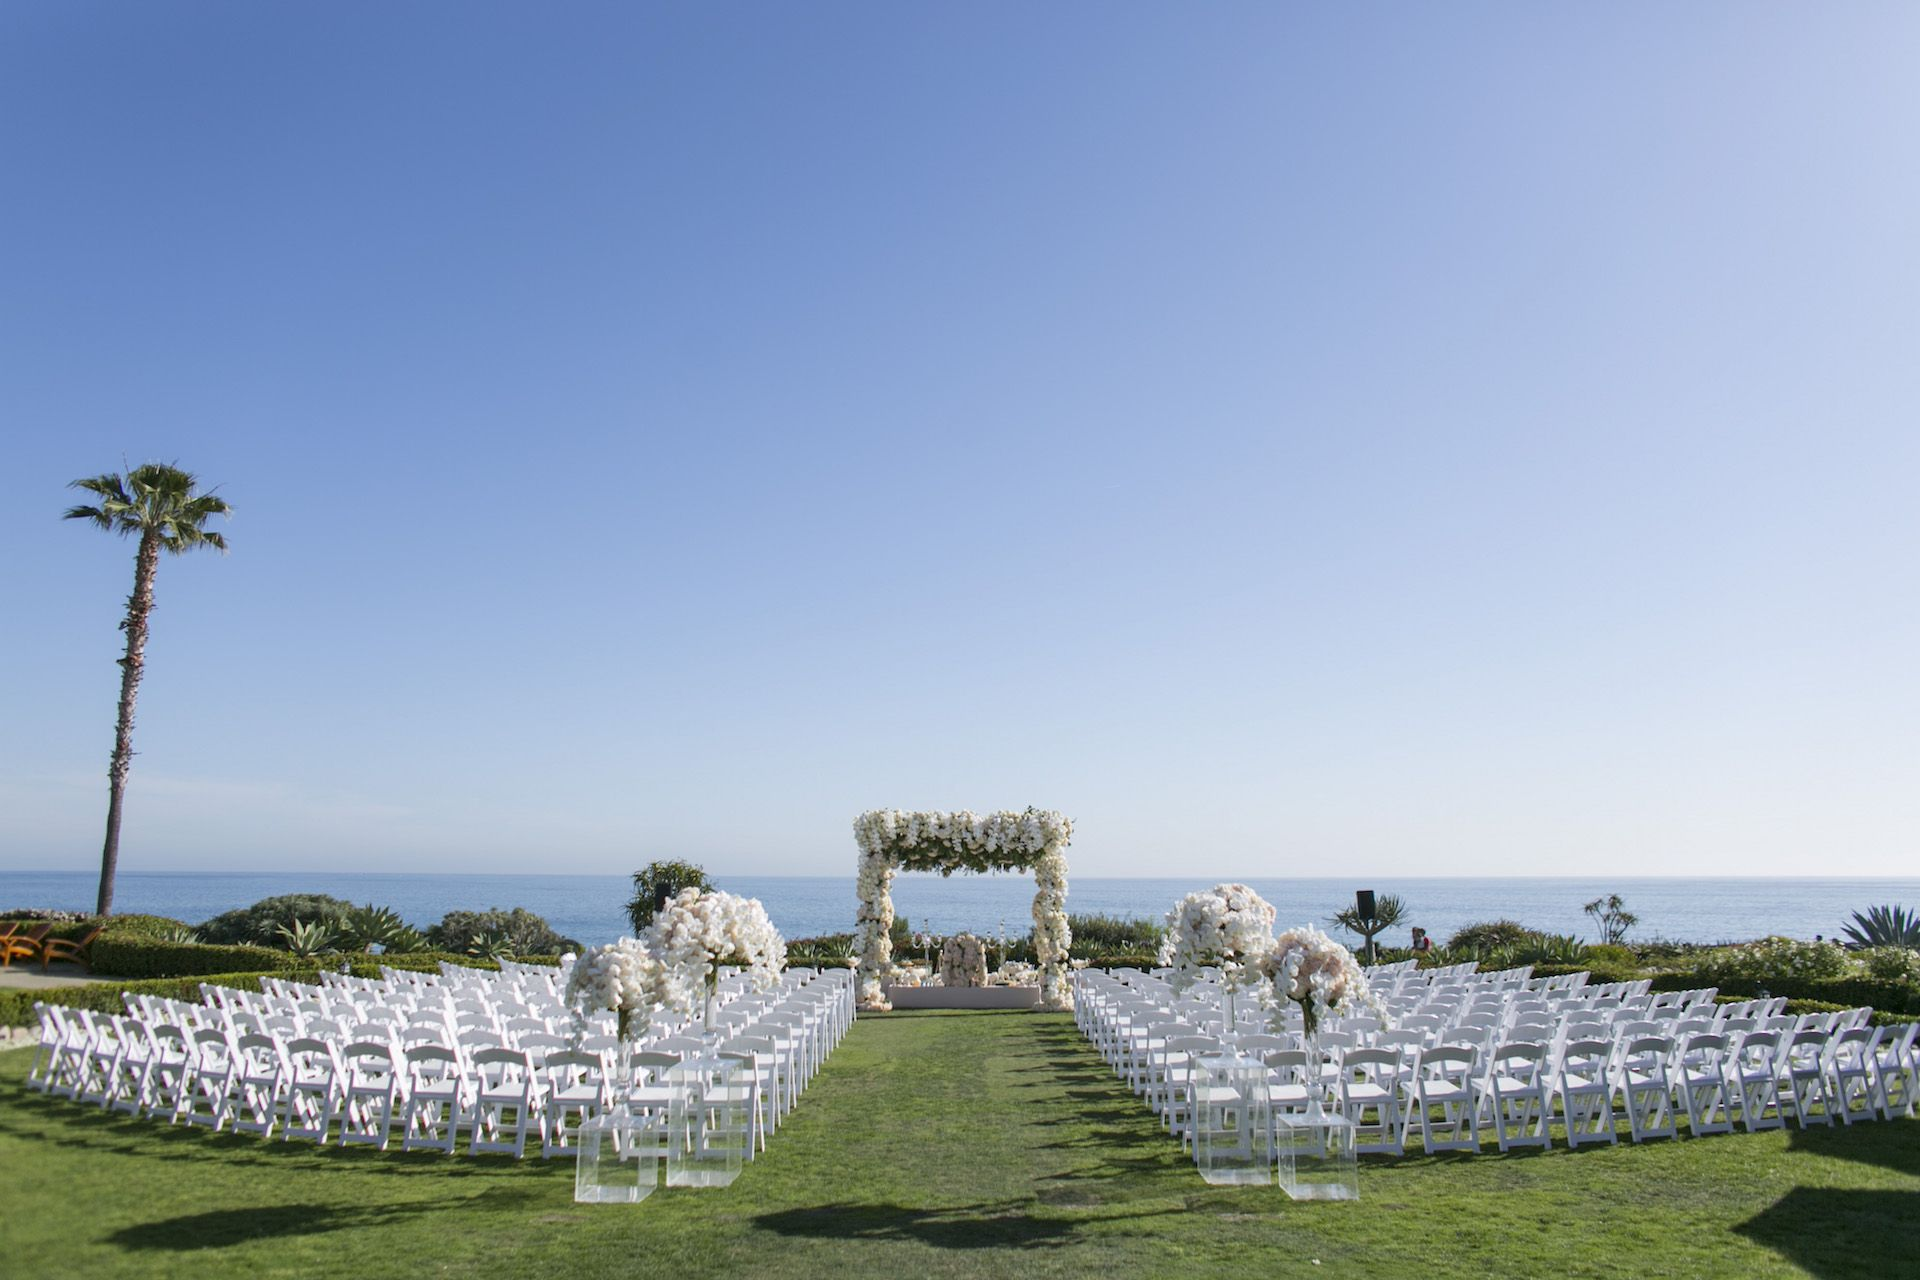 Browse The Photos Of Past Weddings In Laguna Beach And Picture Your Dream